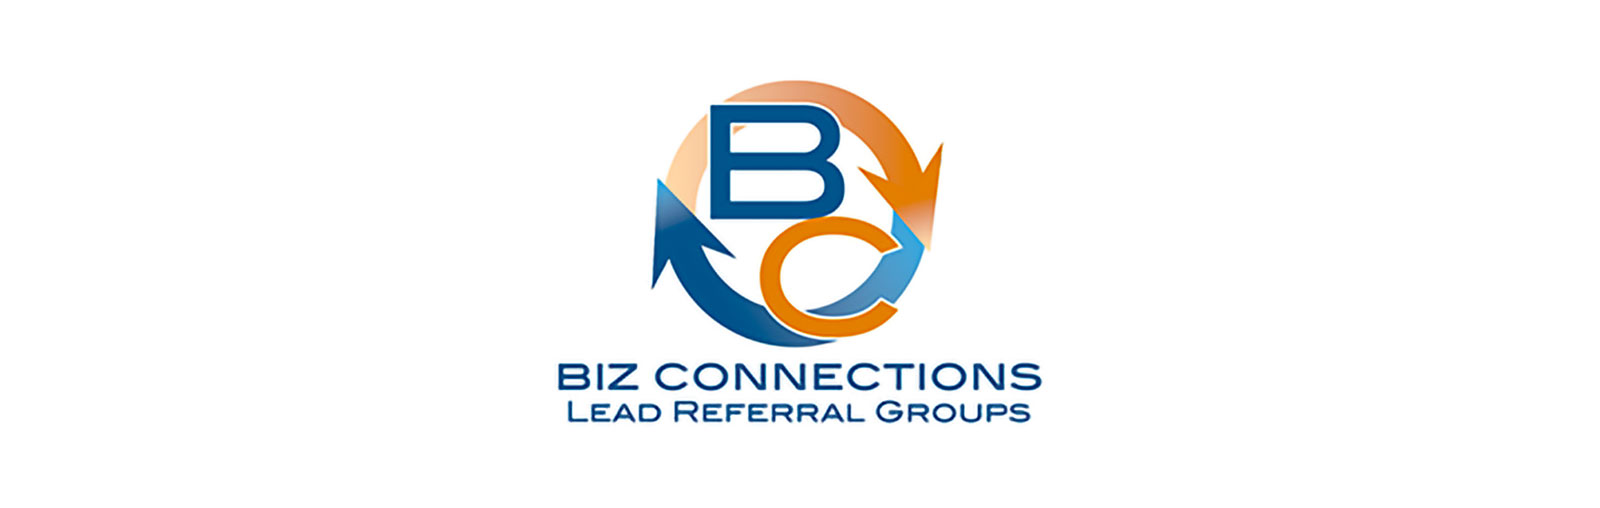 partners-logo-Biz-Connect